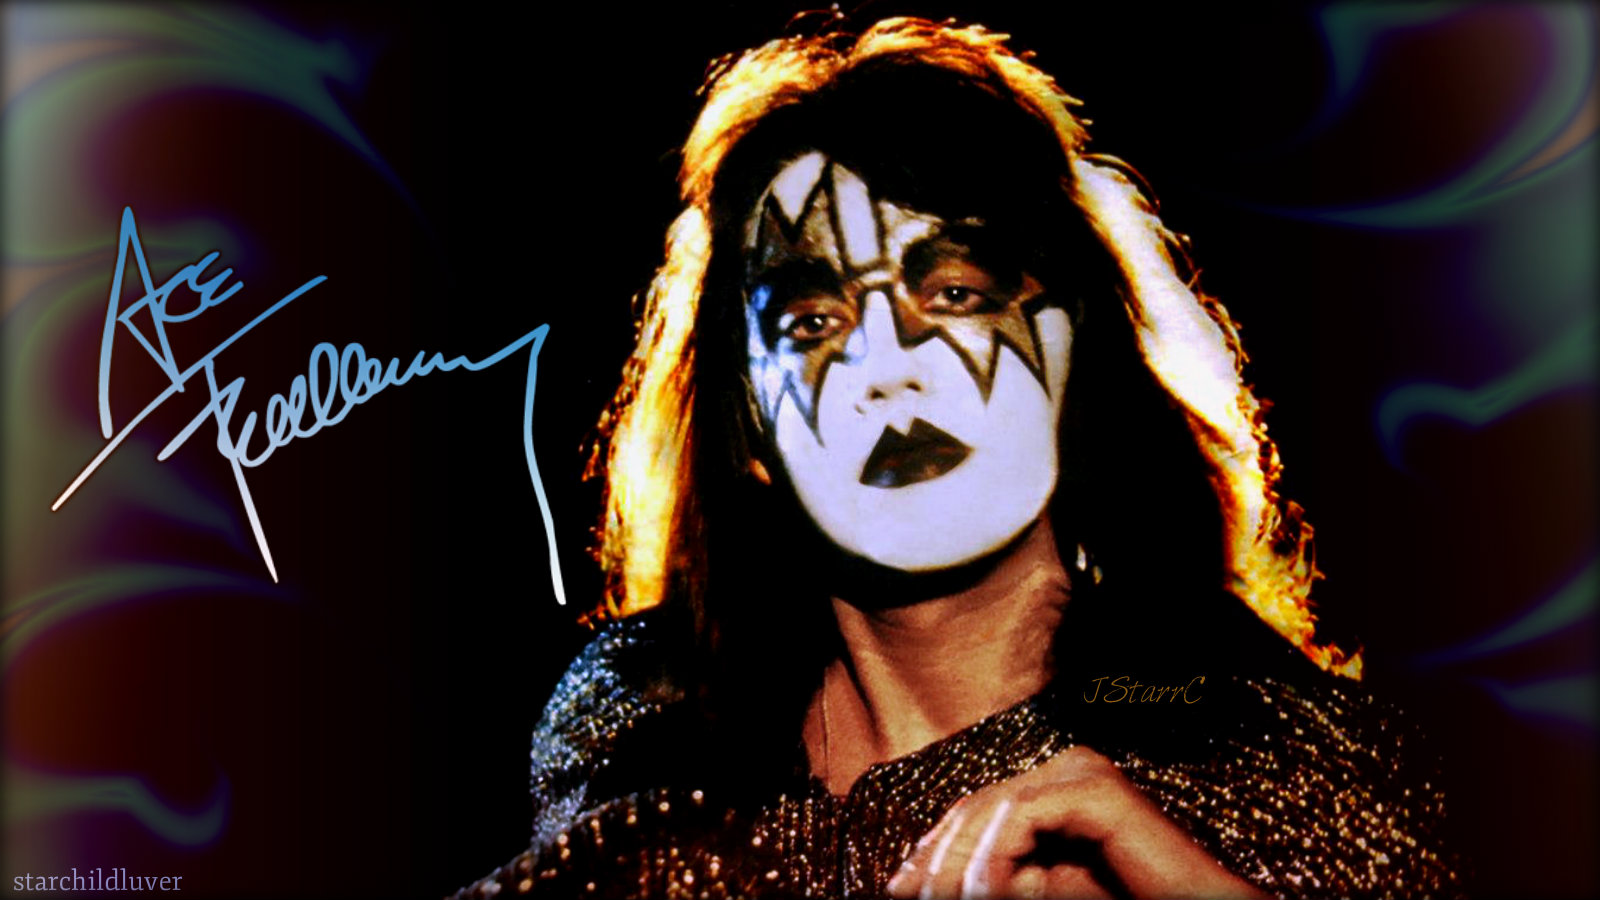 KISS images Ace Frehley HD wallpaper and background photos